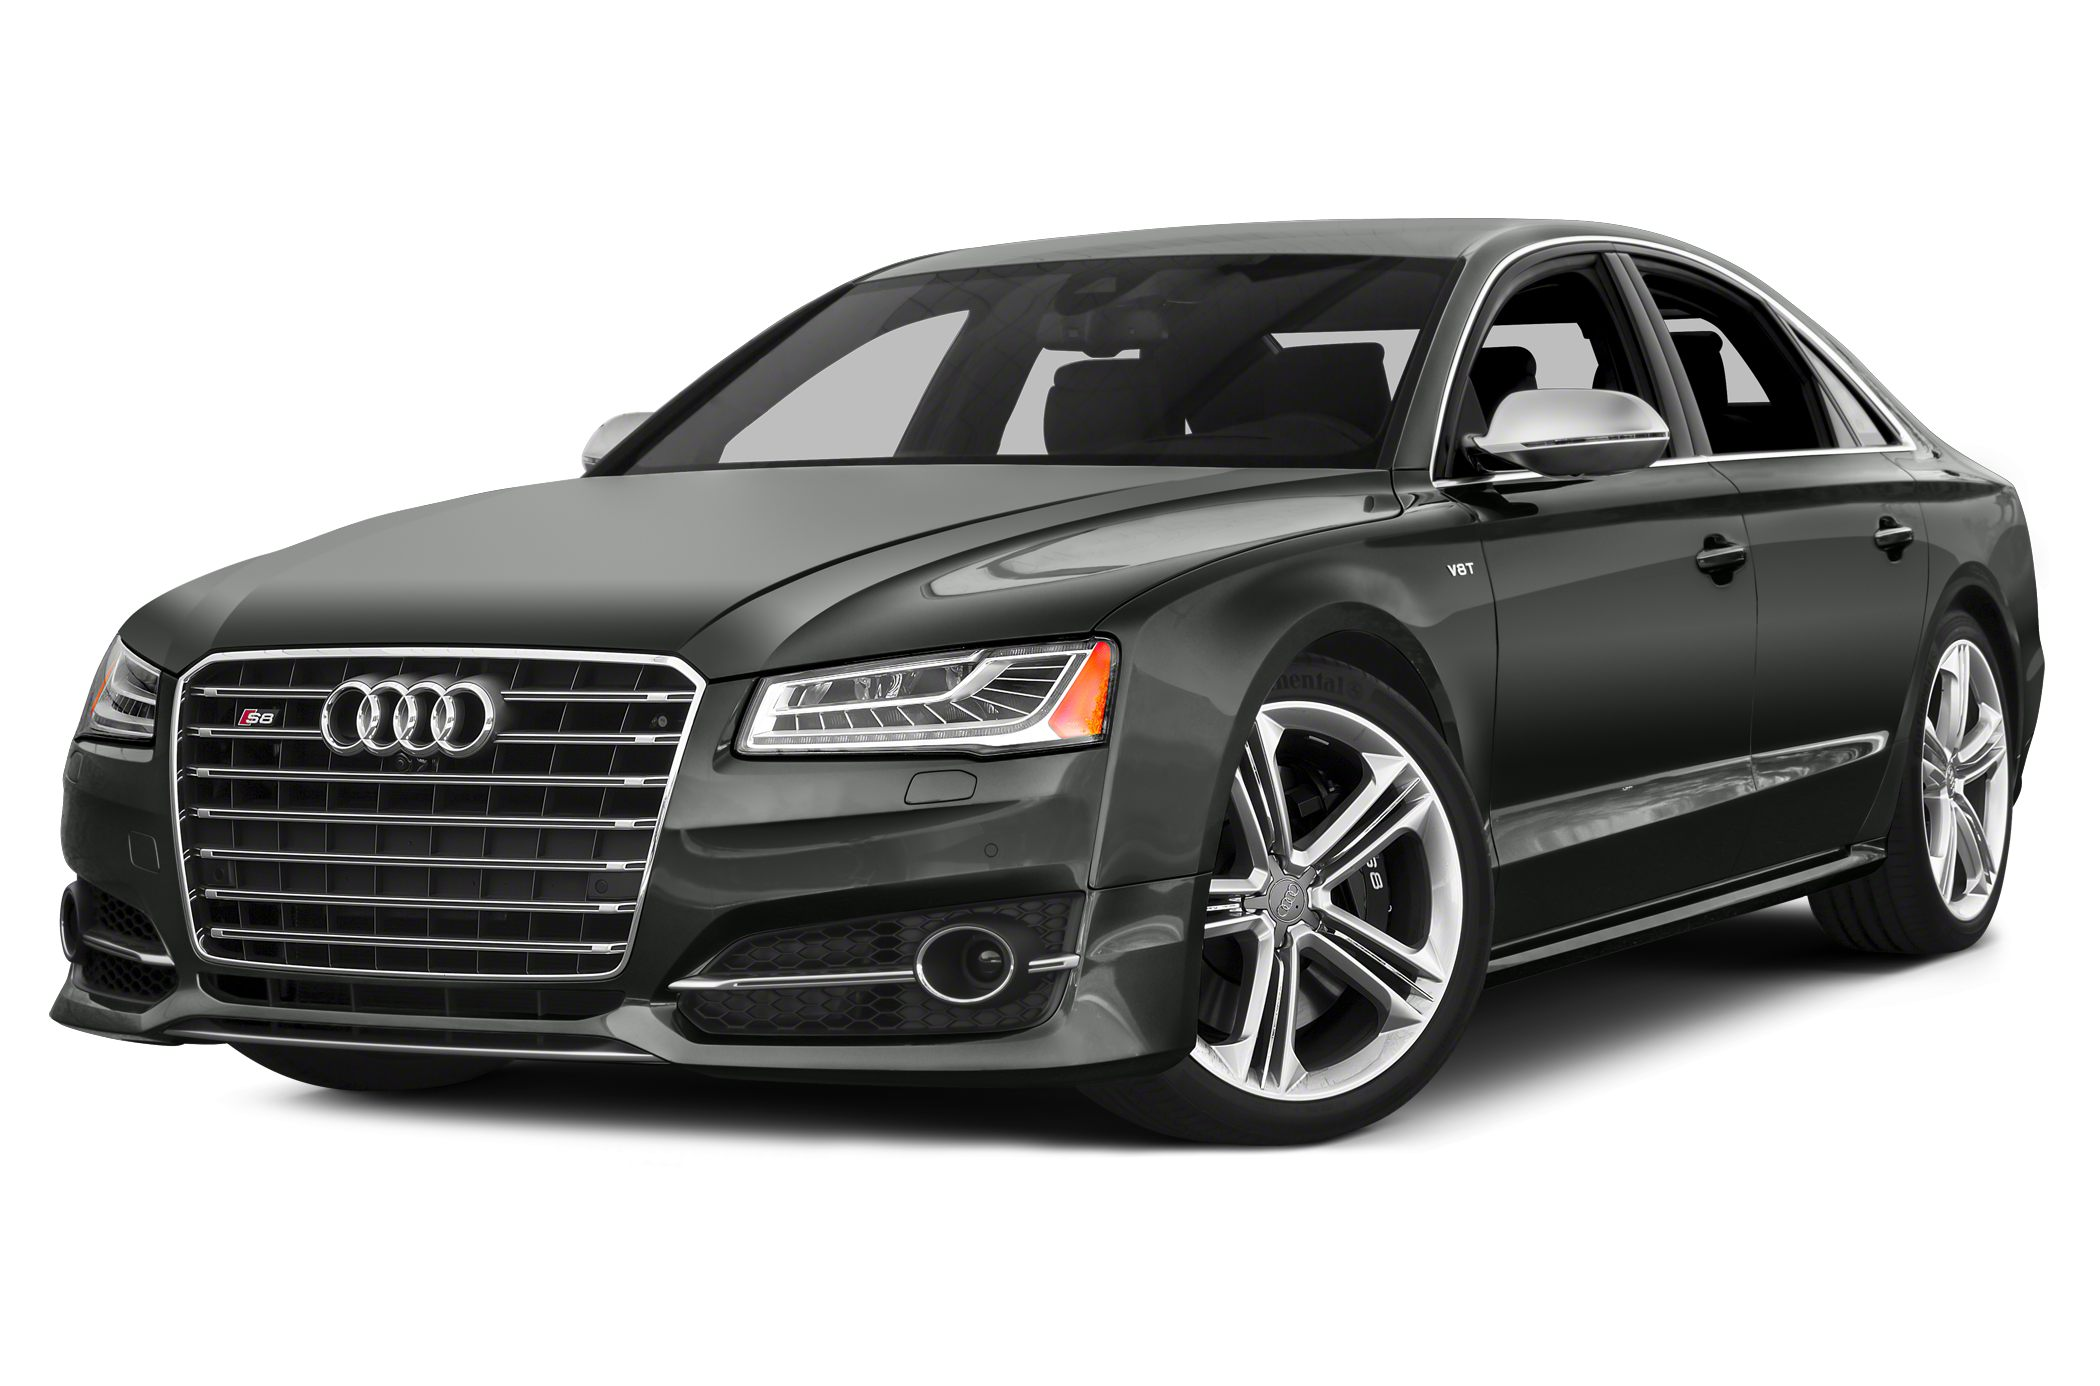 2015 Audi S8 4.0T Sedan for sale in Minneapolis for $125,445 with 12 miles.